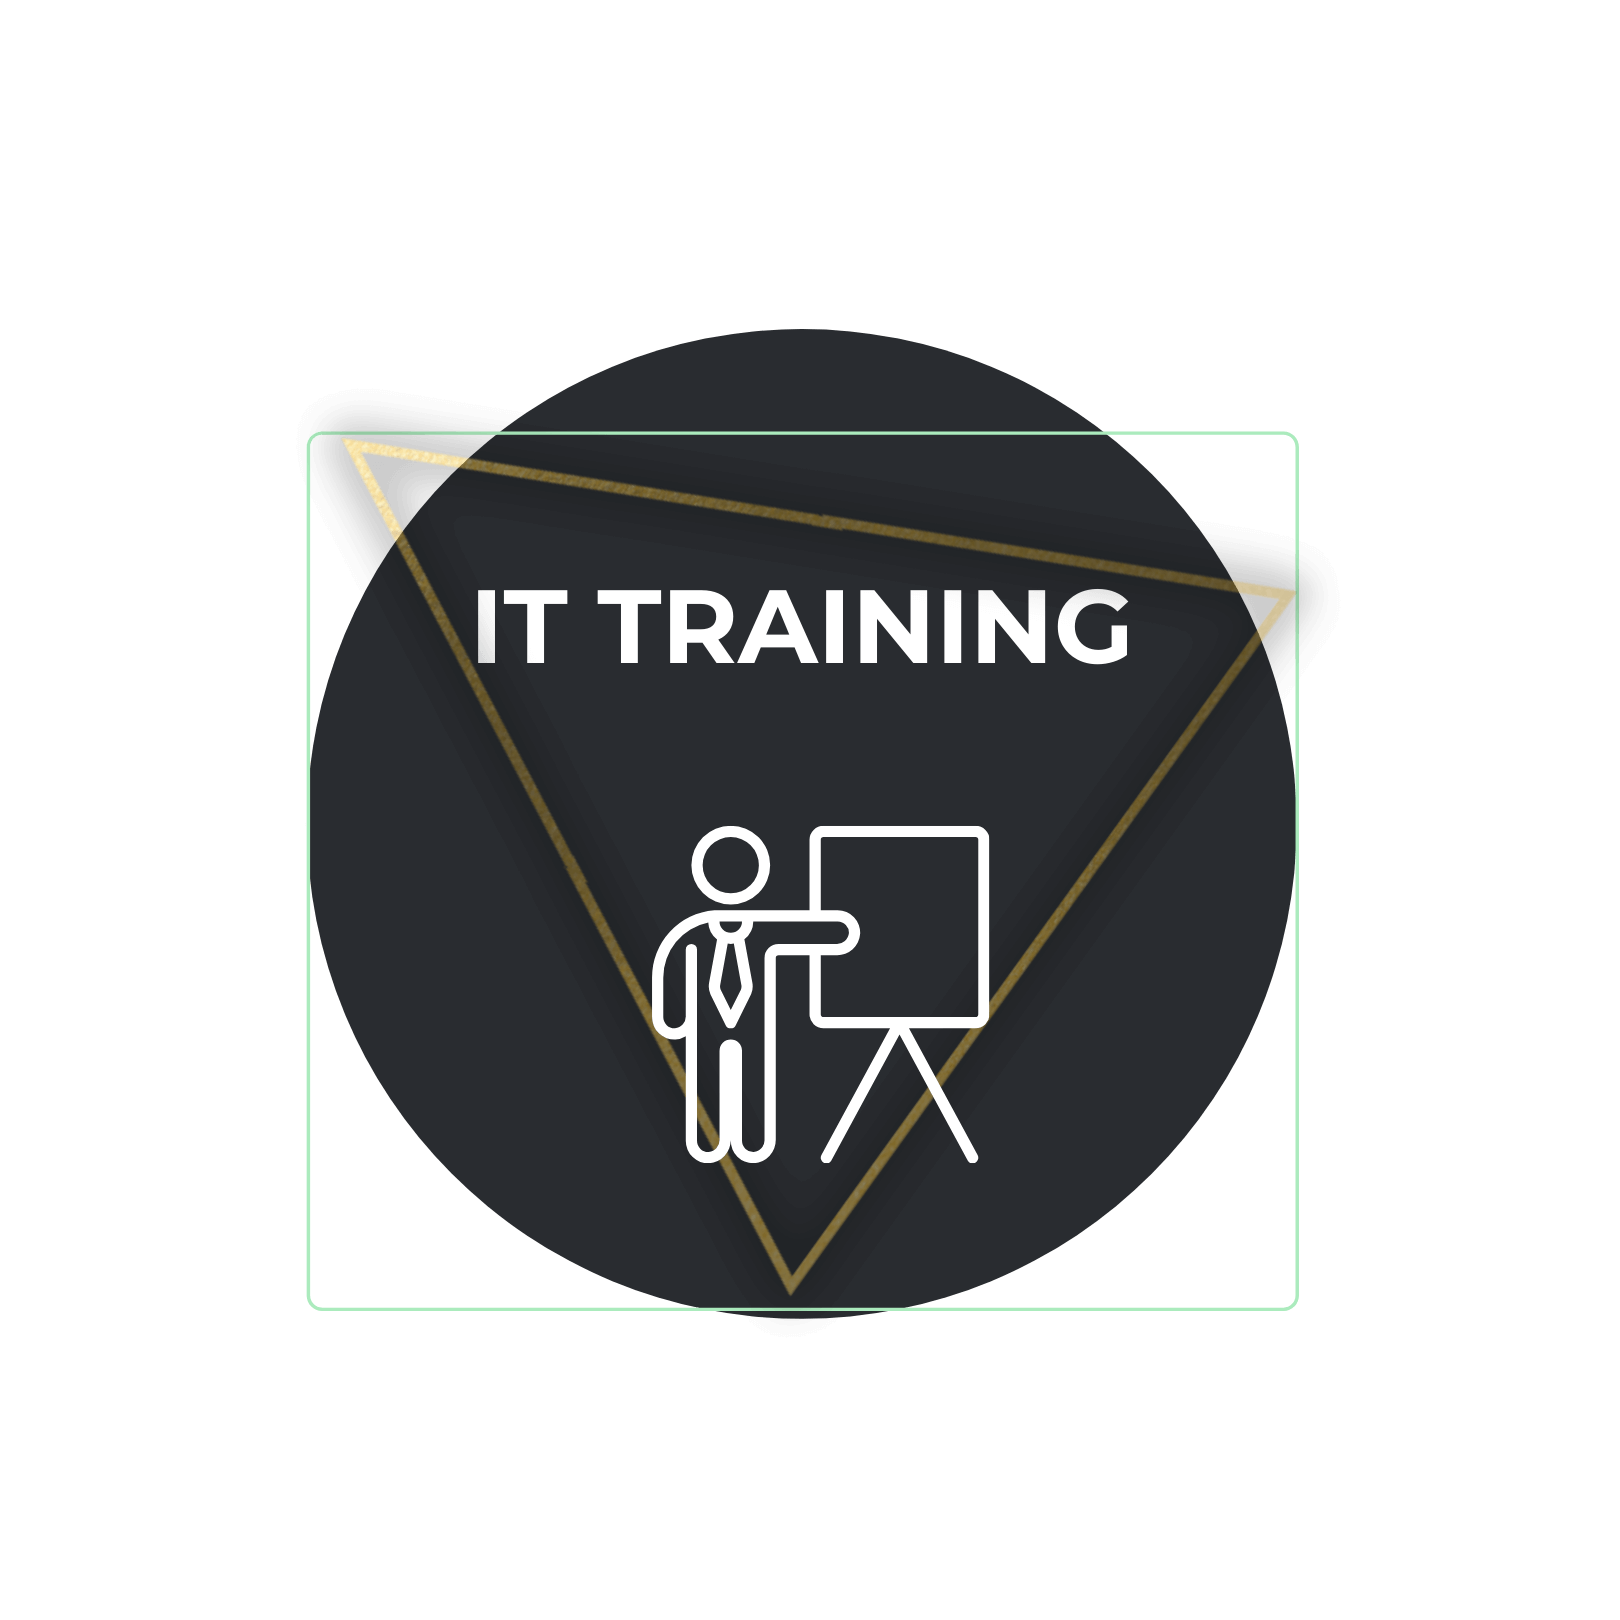 Information Technology (IT) Training, Agile Business Concepts